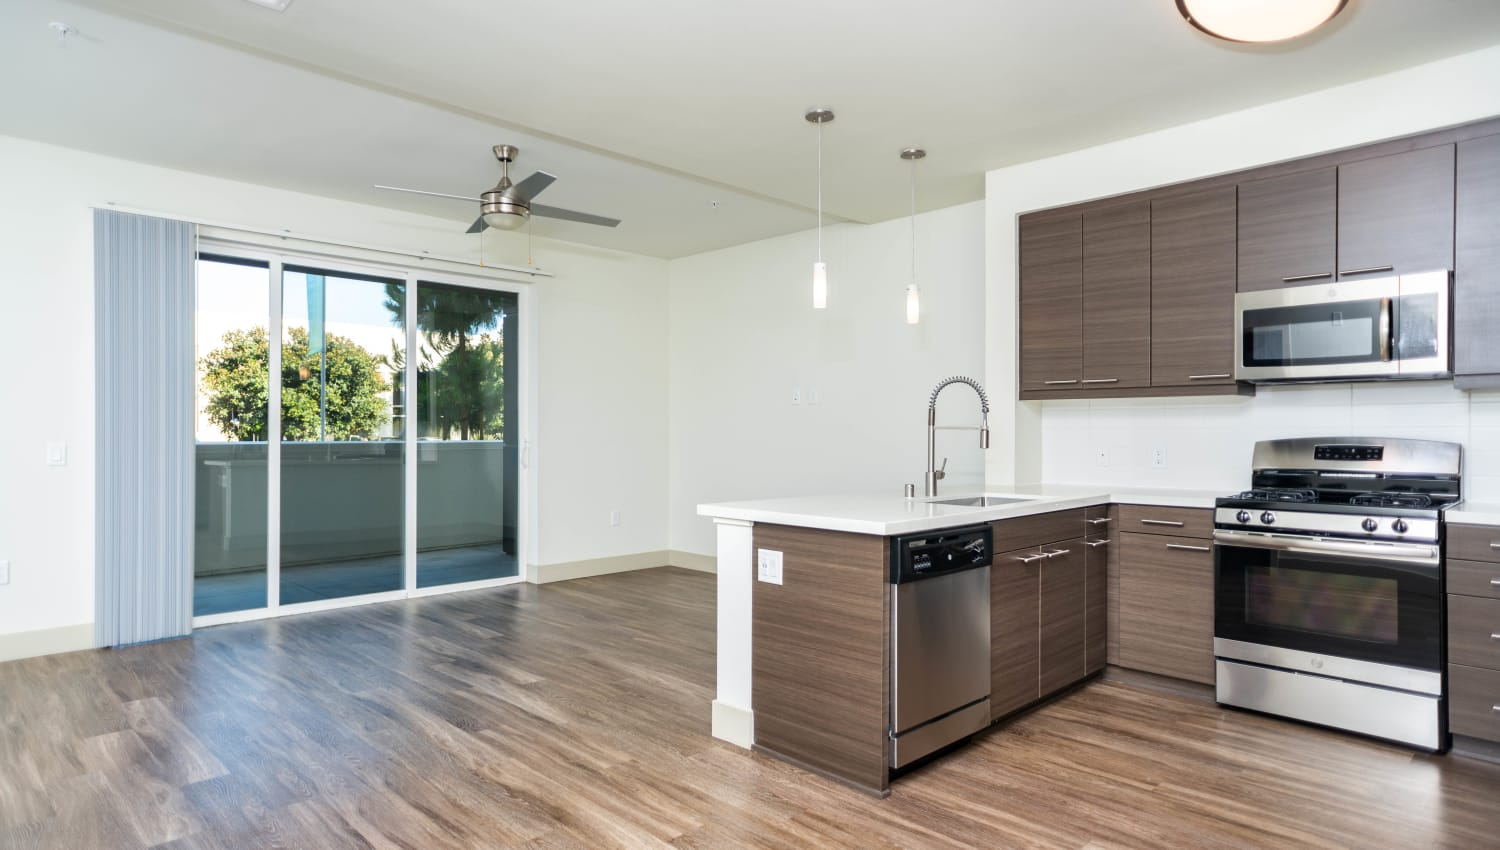 View of the private balcony outside a model home's kitchen at Fusion Apartments in Irvine, California